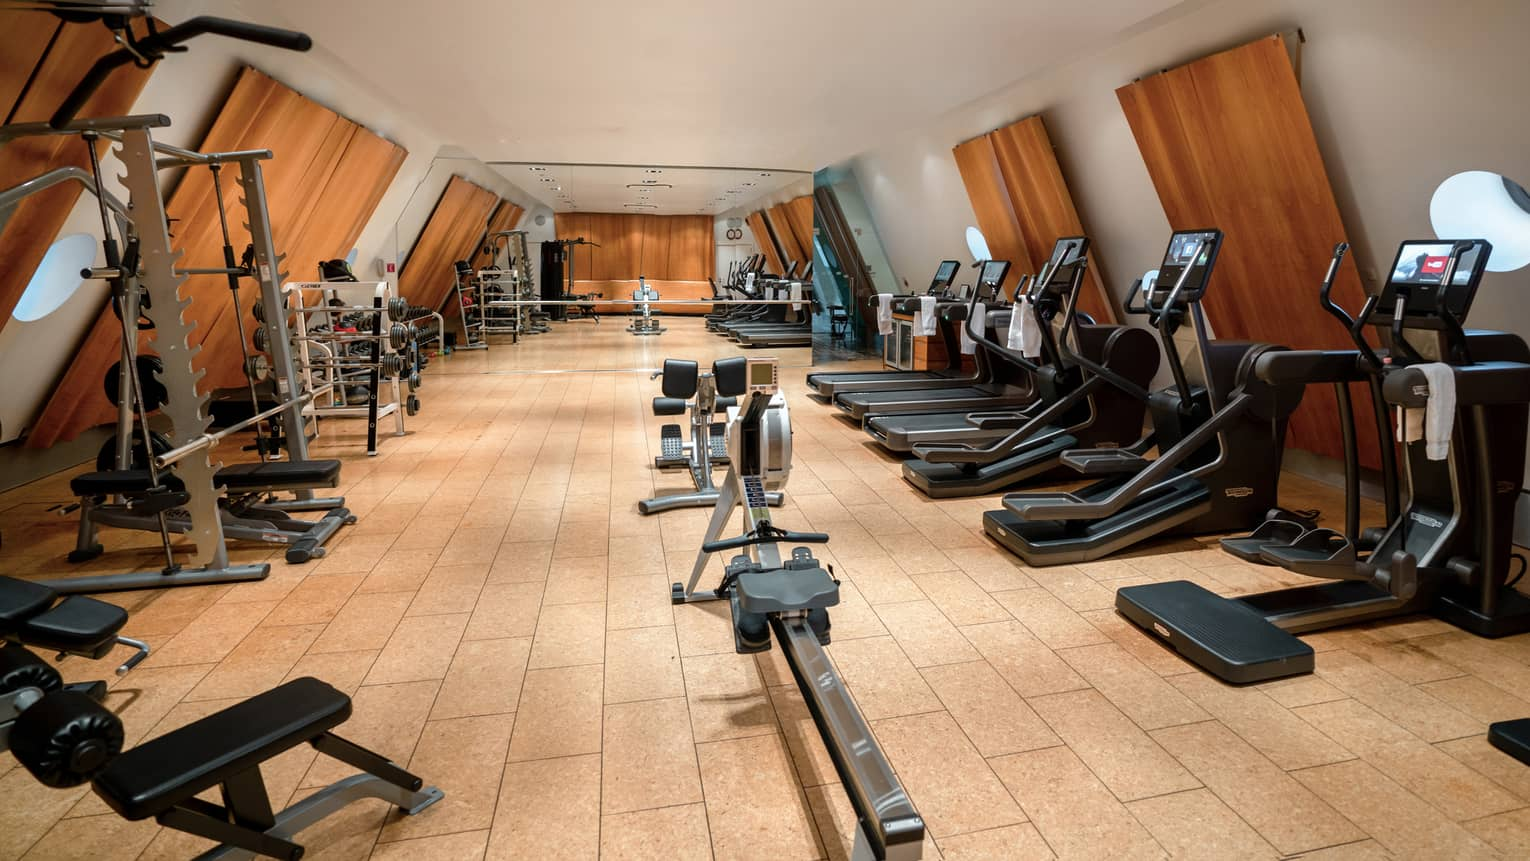 Fitness centre with rowing machine in middle, treadmills on right and weight equipment on left